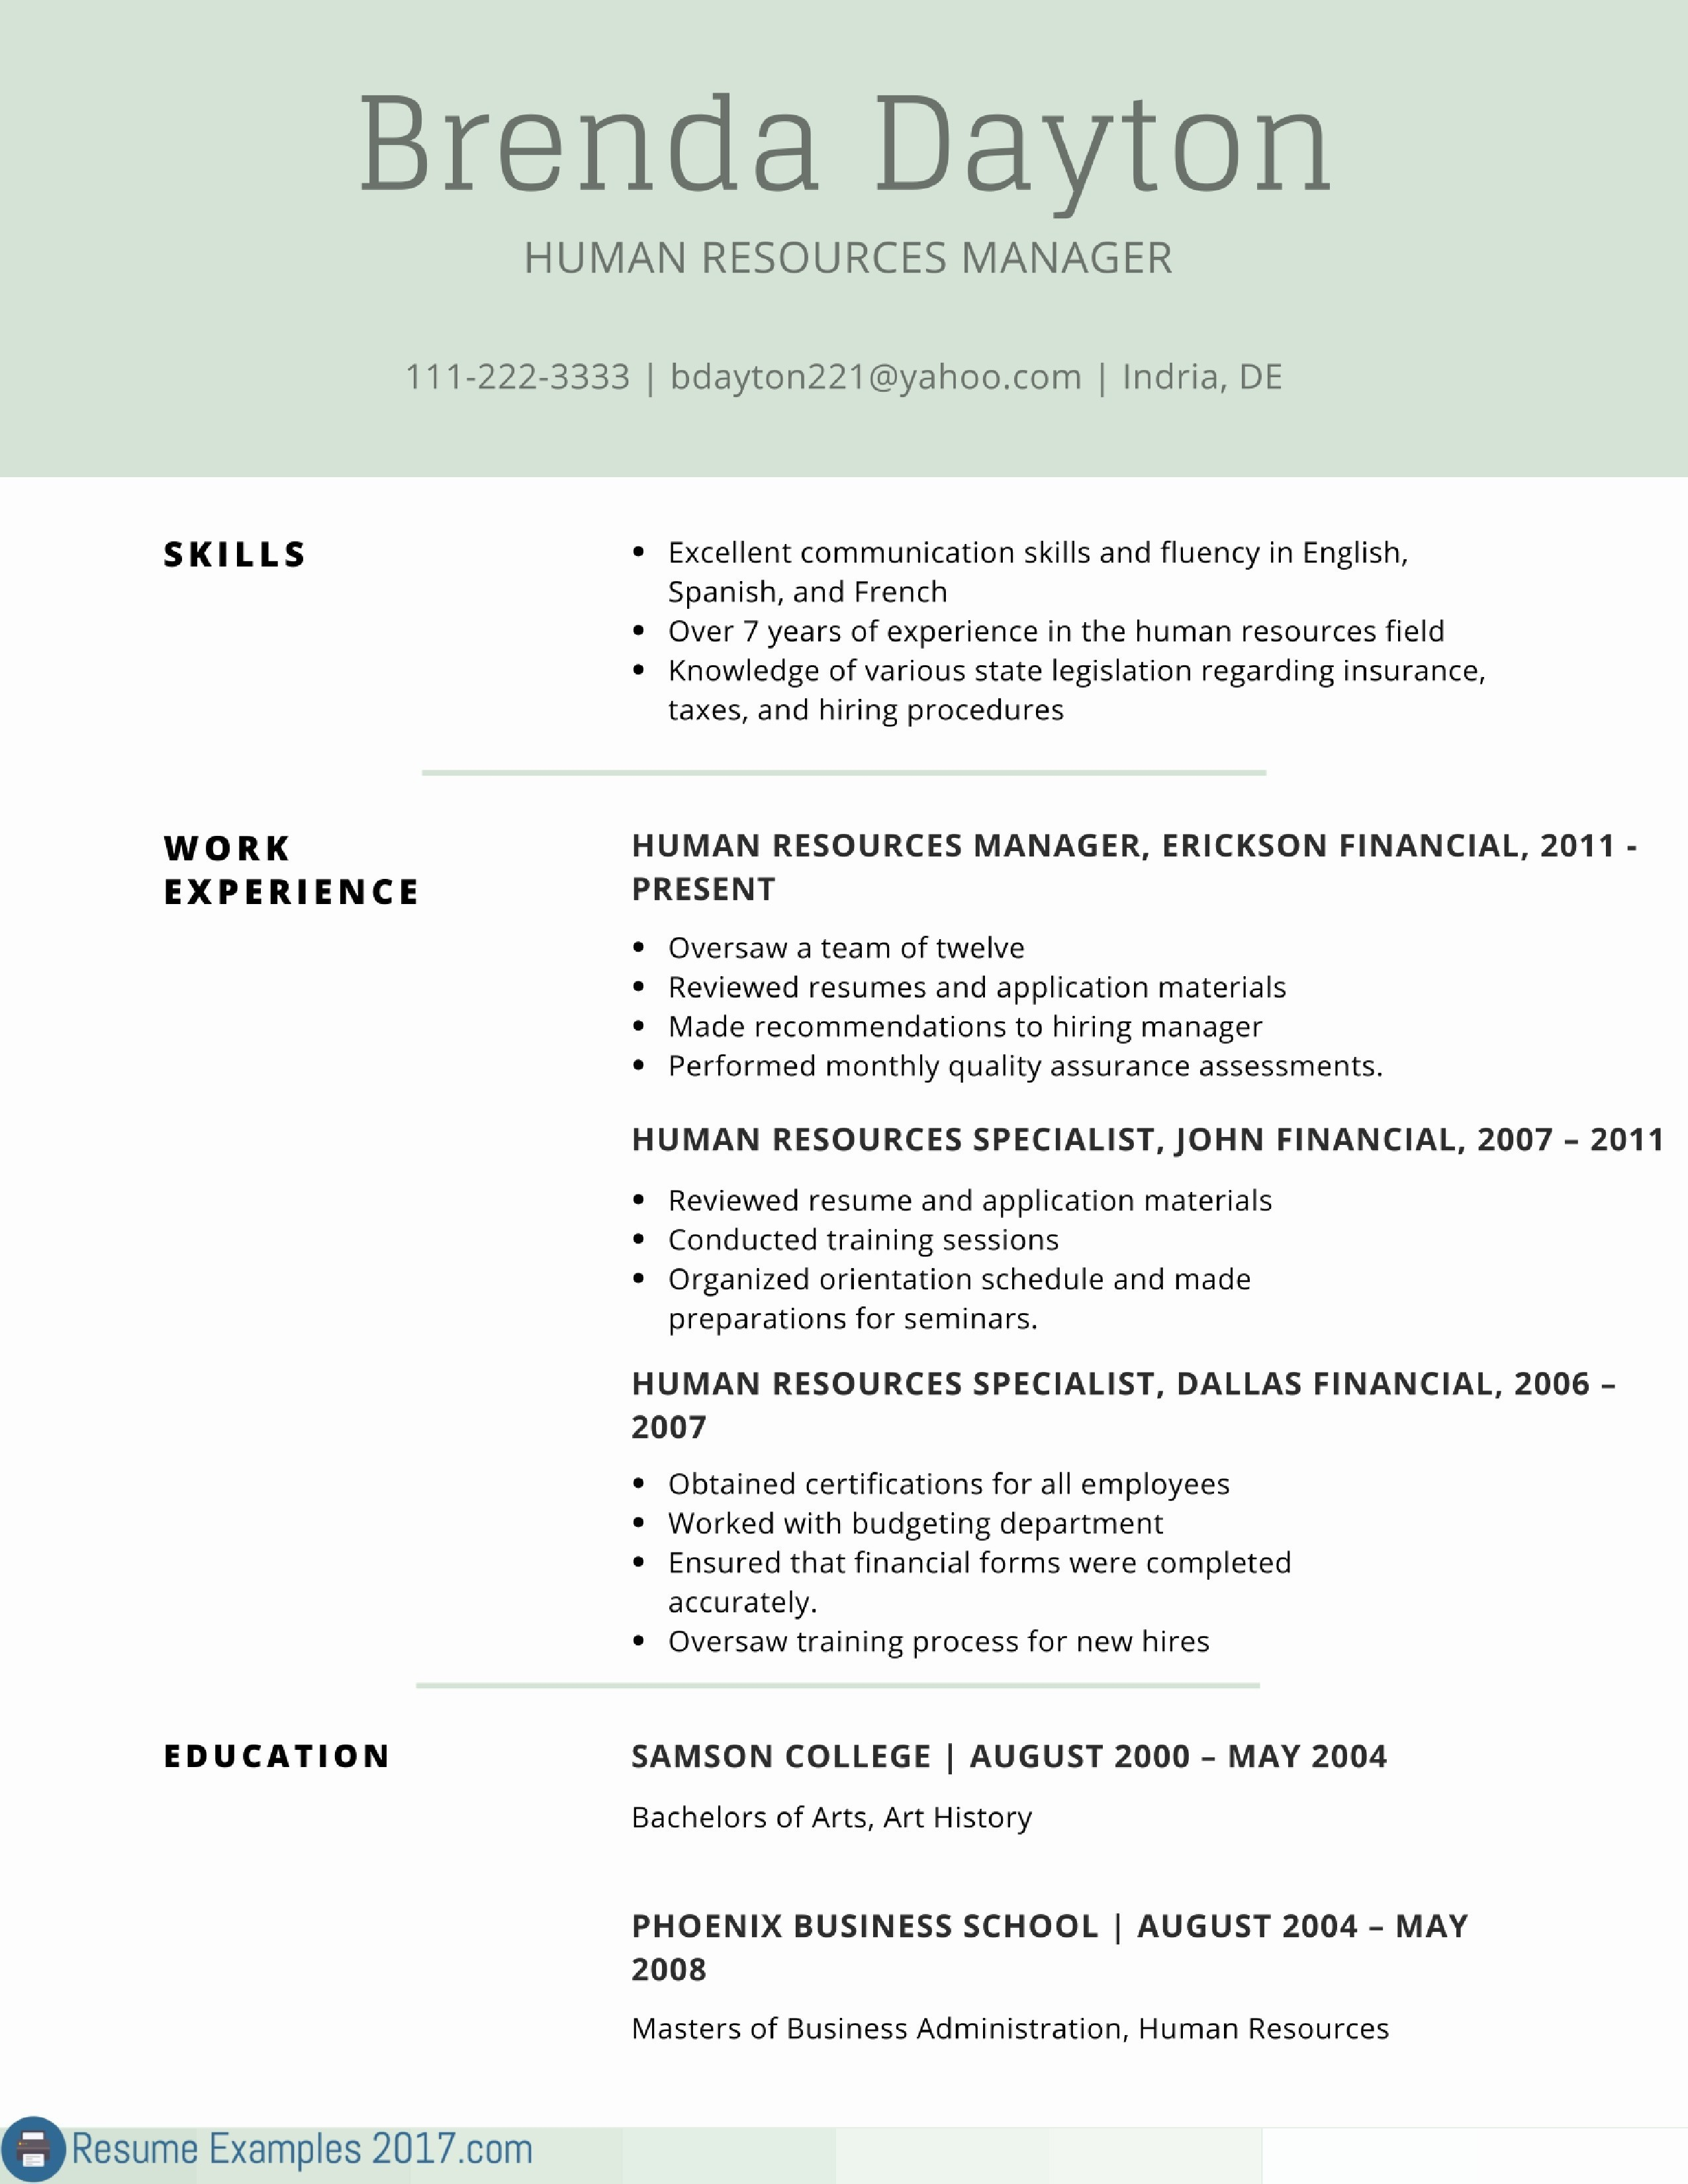 Free Holiday Letter Template - Professional Business Resume Fresh Business Introduction Letter